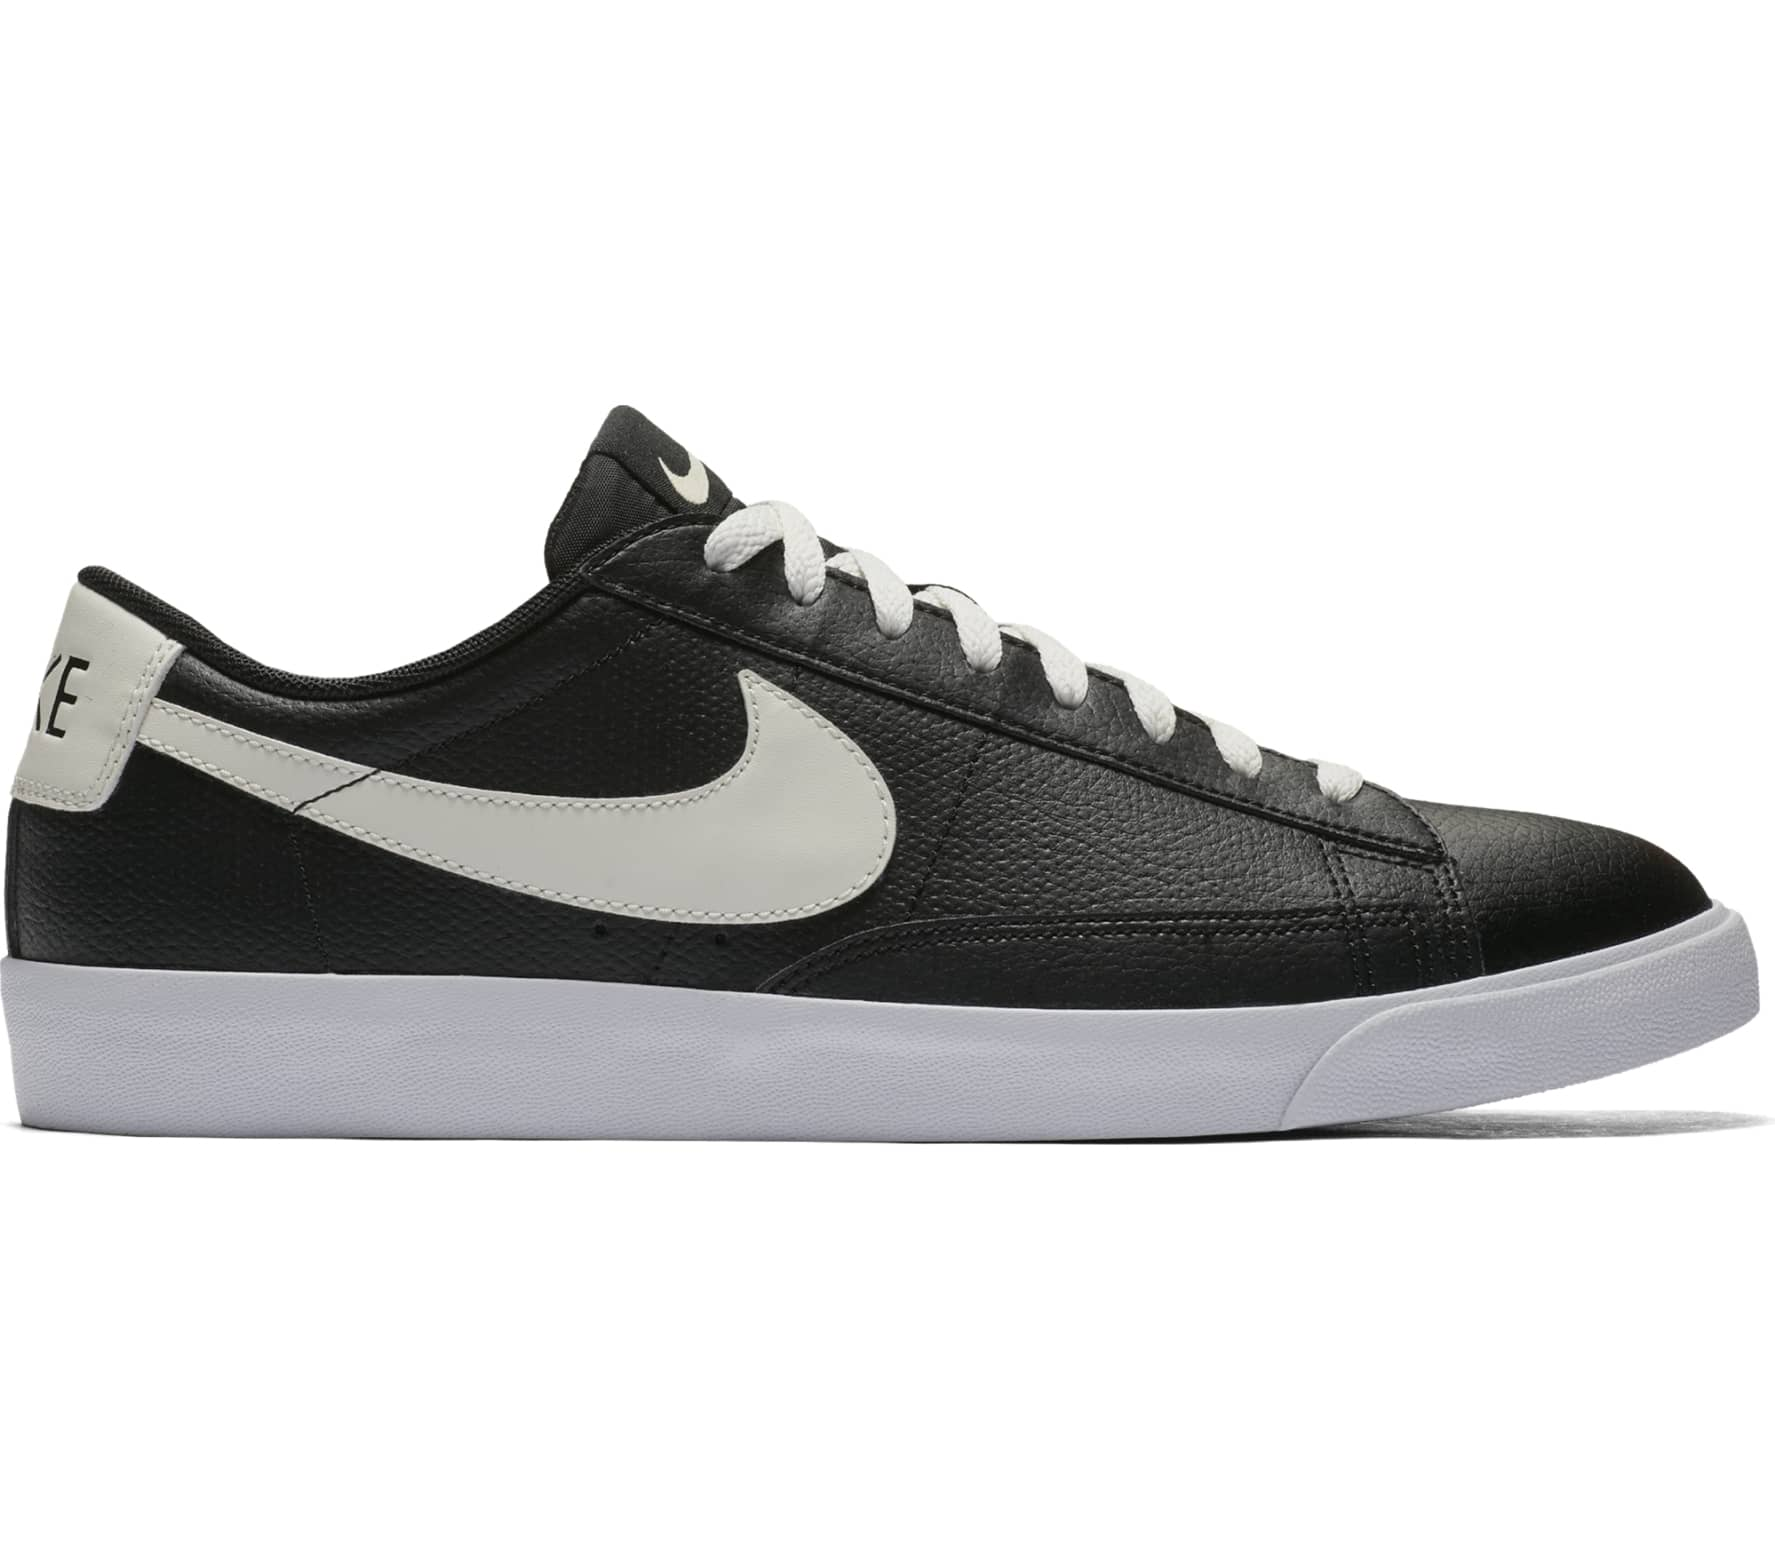 premium selection fe71a 7d732 ... switzerland nike blazer low leather herren sneaker schwarz weiß 5568f  3a765